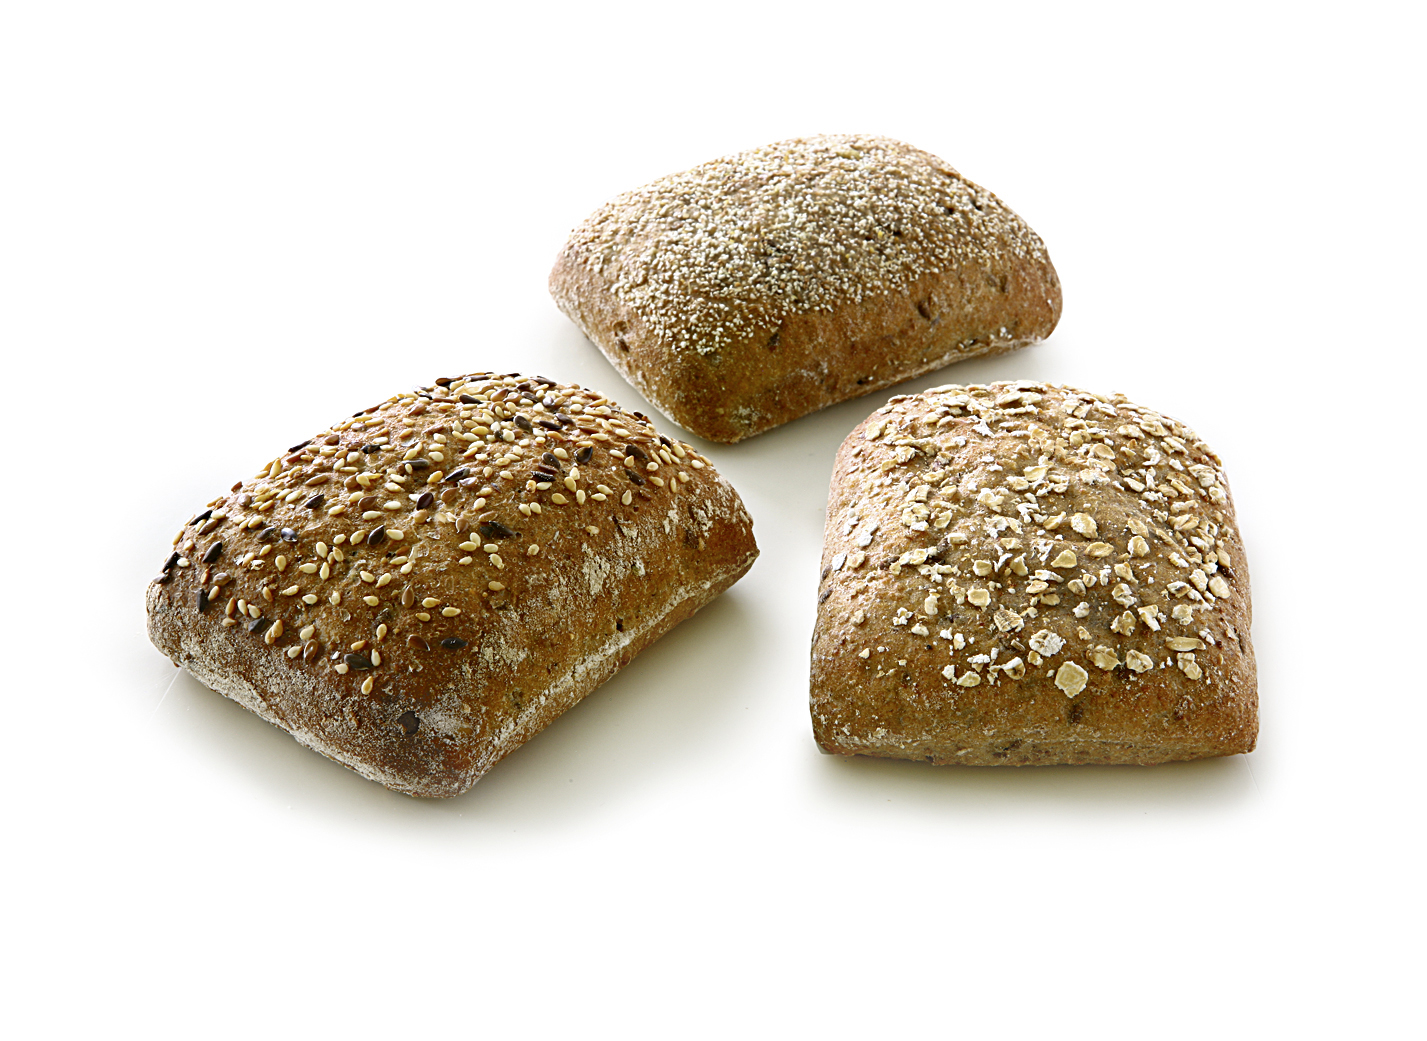 Wholegrain roll mix - Mix of the varieties: Whole Grain Four-Grain Roll, Whole-Grain Roll, Oat Whole-Grain Roll